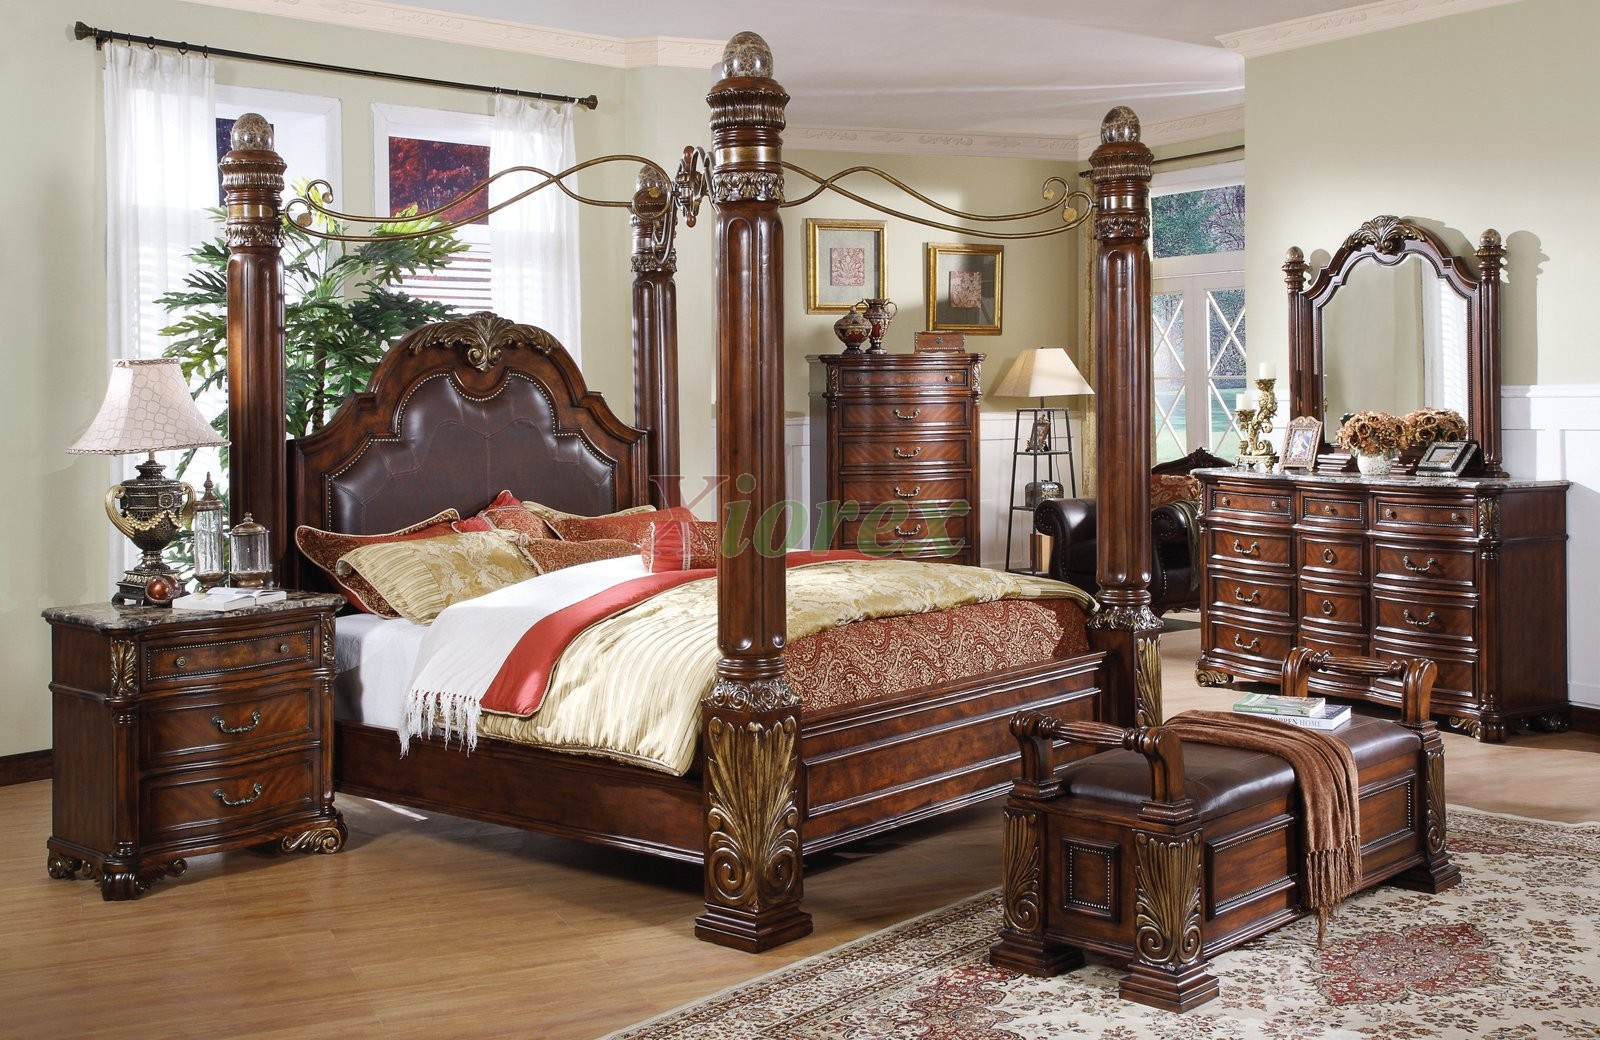 poster bedroom set w metal canopy leather headboard queen and king beds - King Bed Bedroom Sets